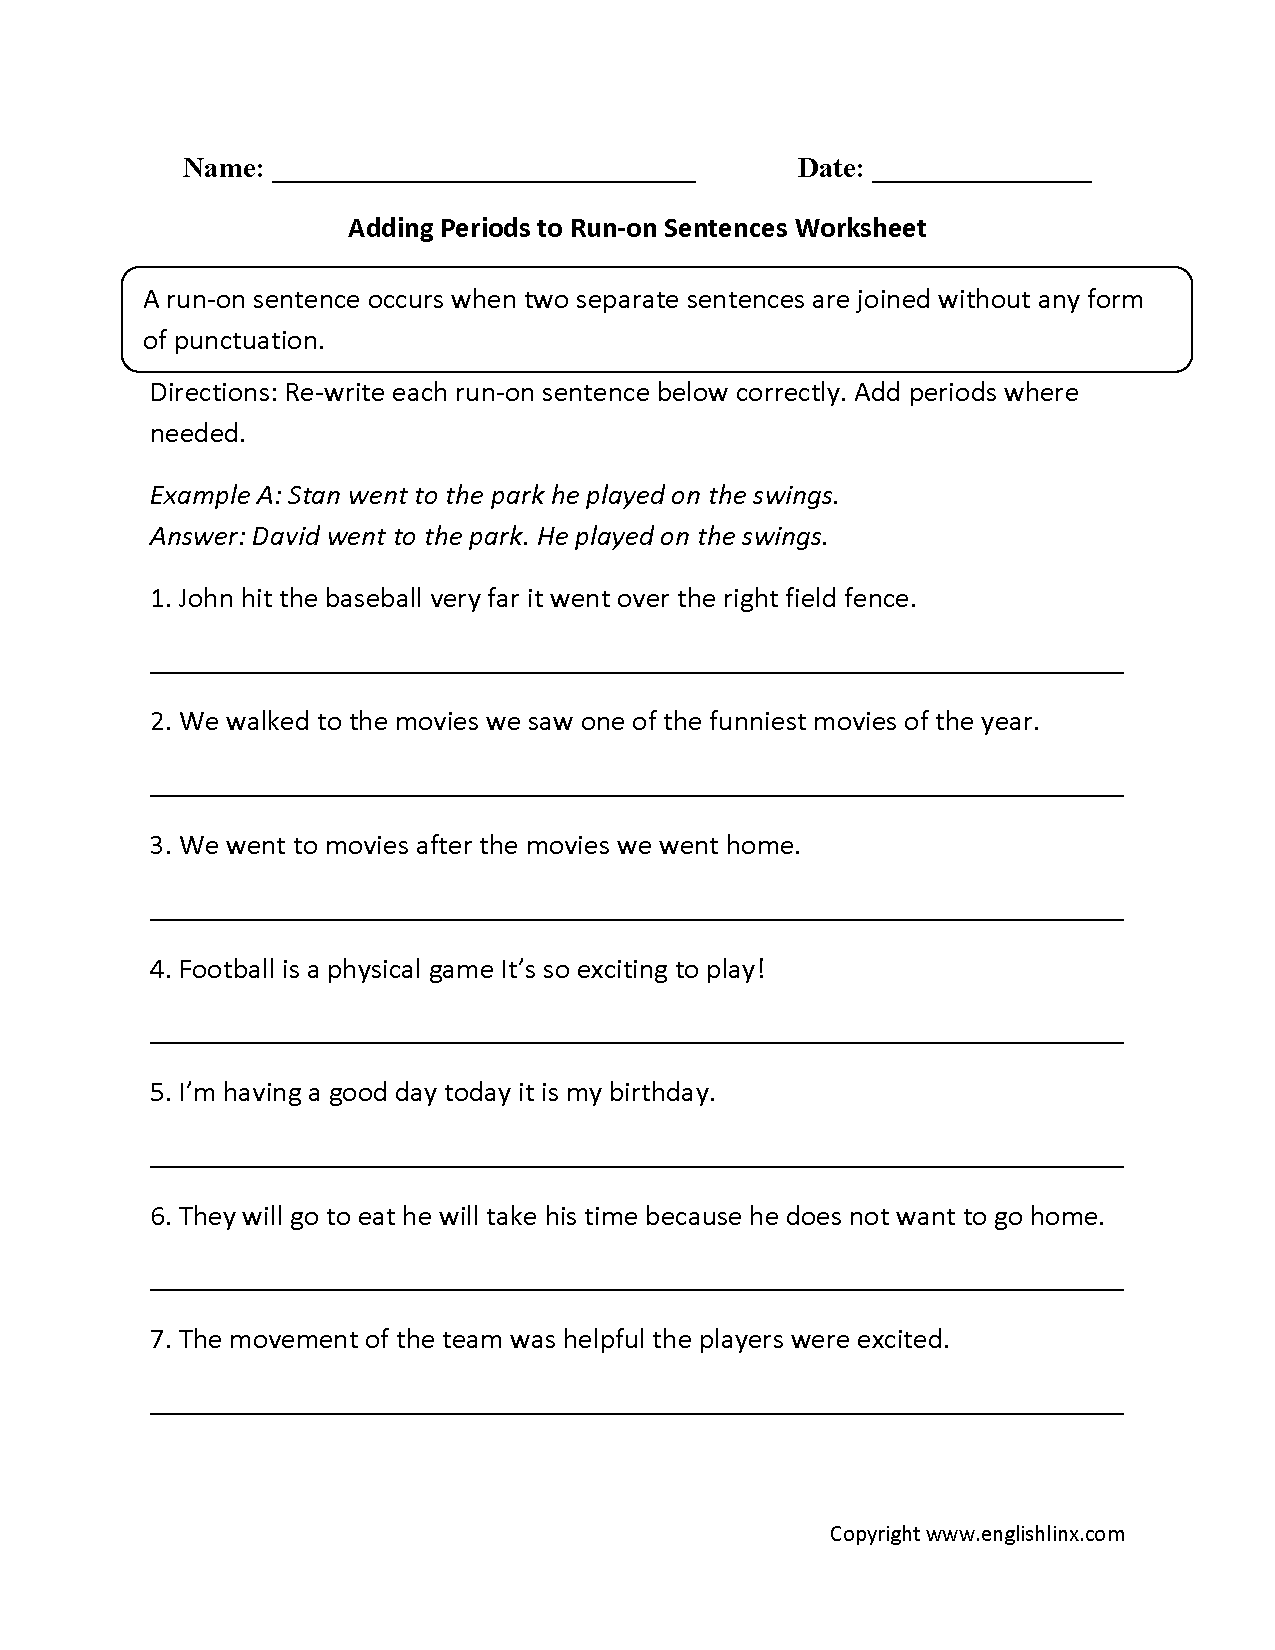 worksheet Editing Sentences Worksheets sentences worksheets run on worksheets